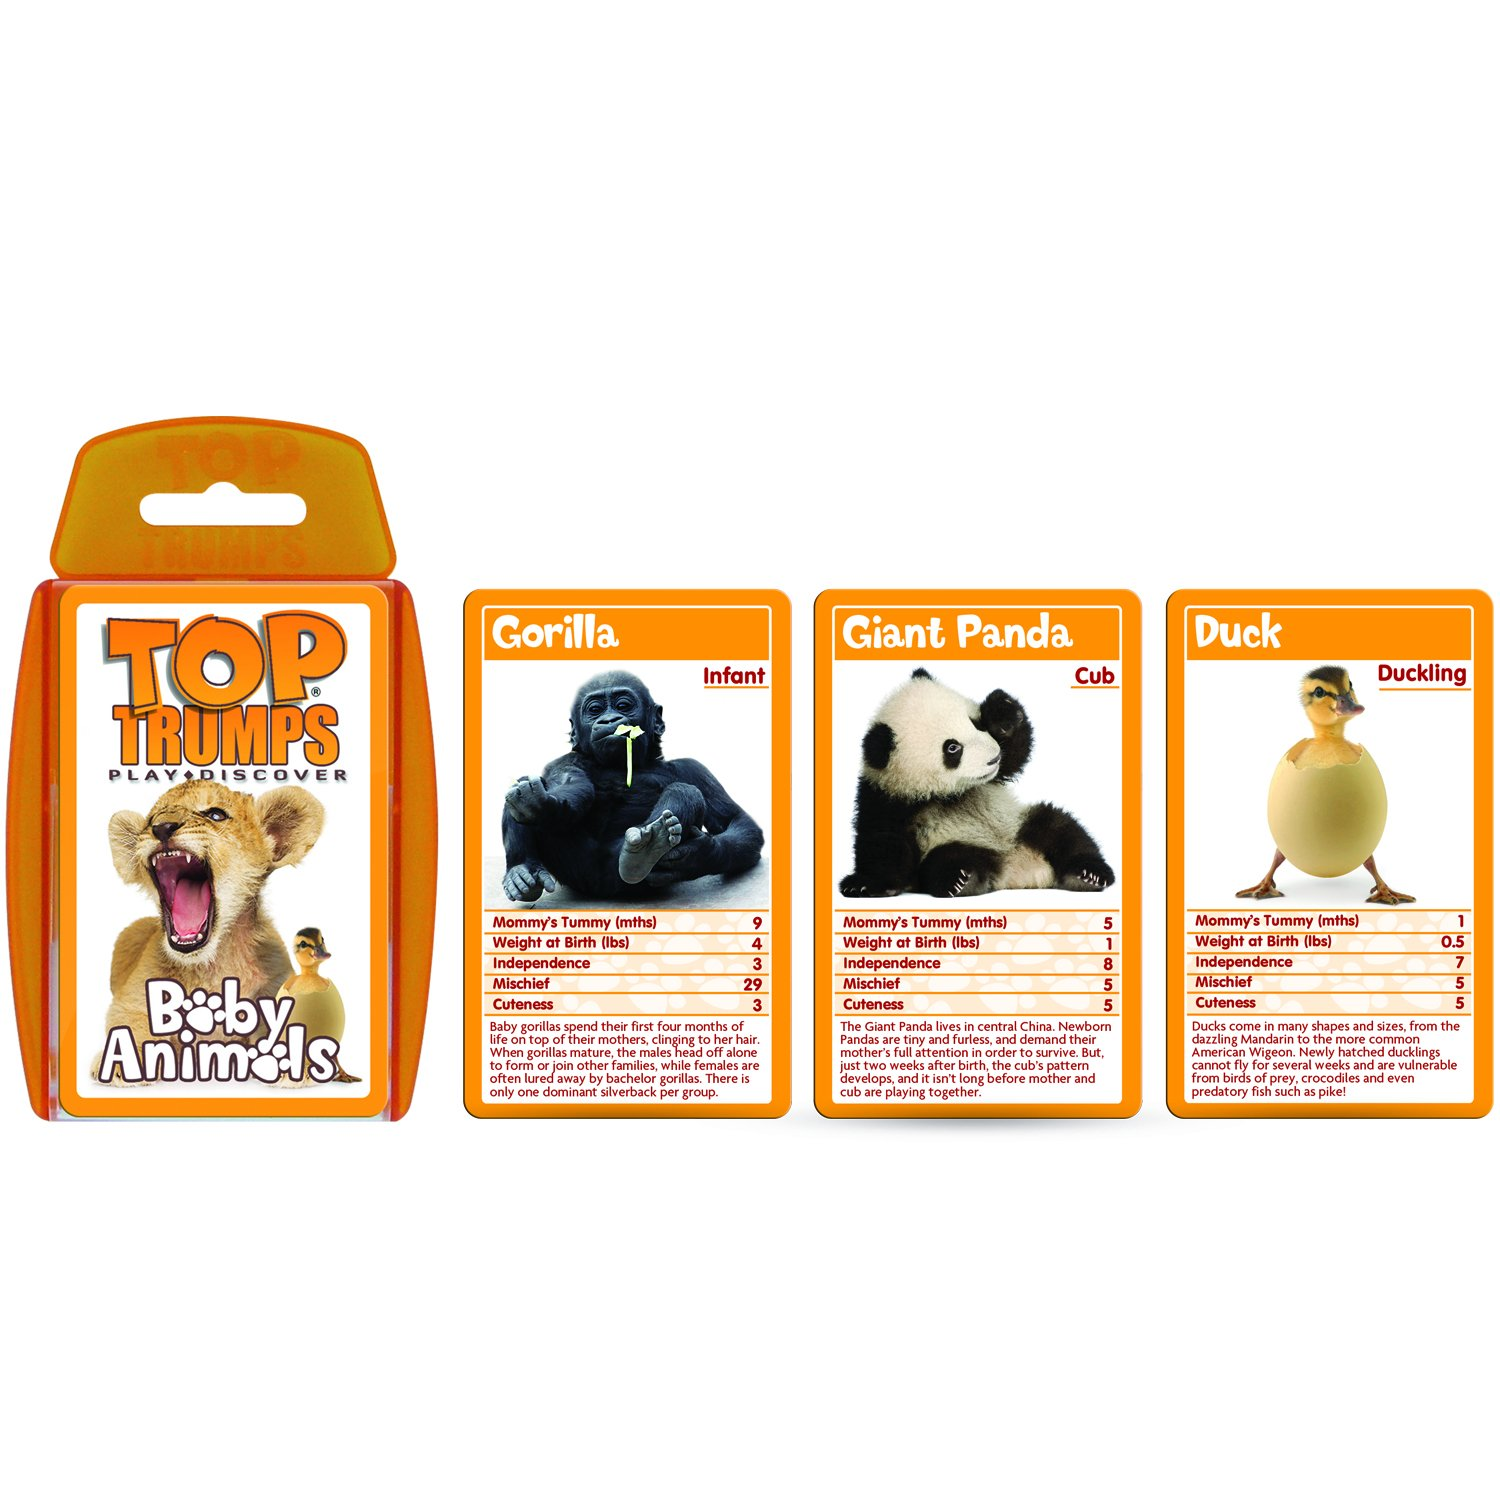 Lovable Dogs Top Trumps Card Game